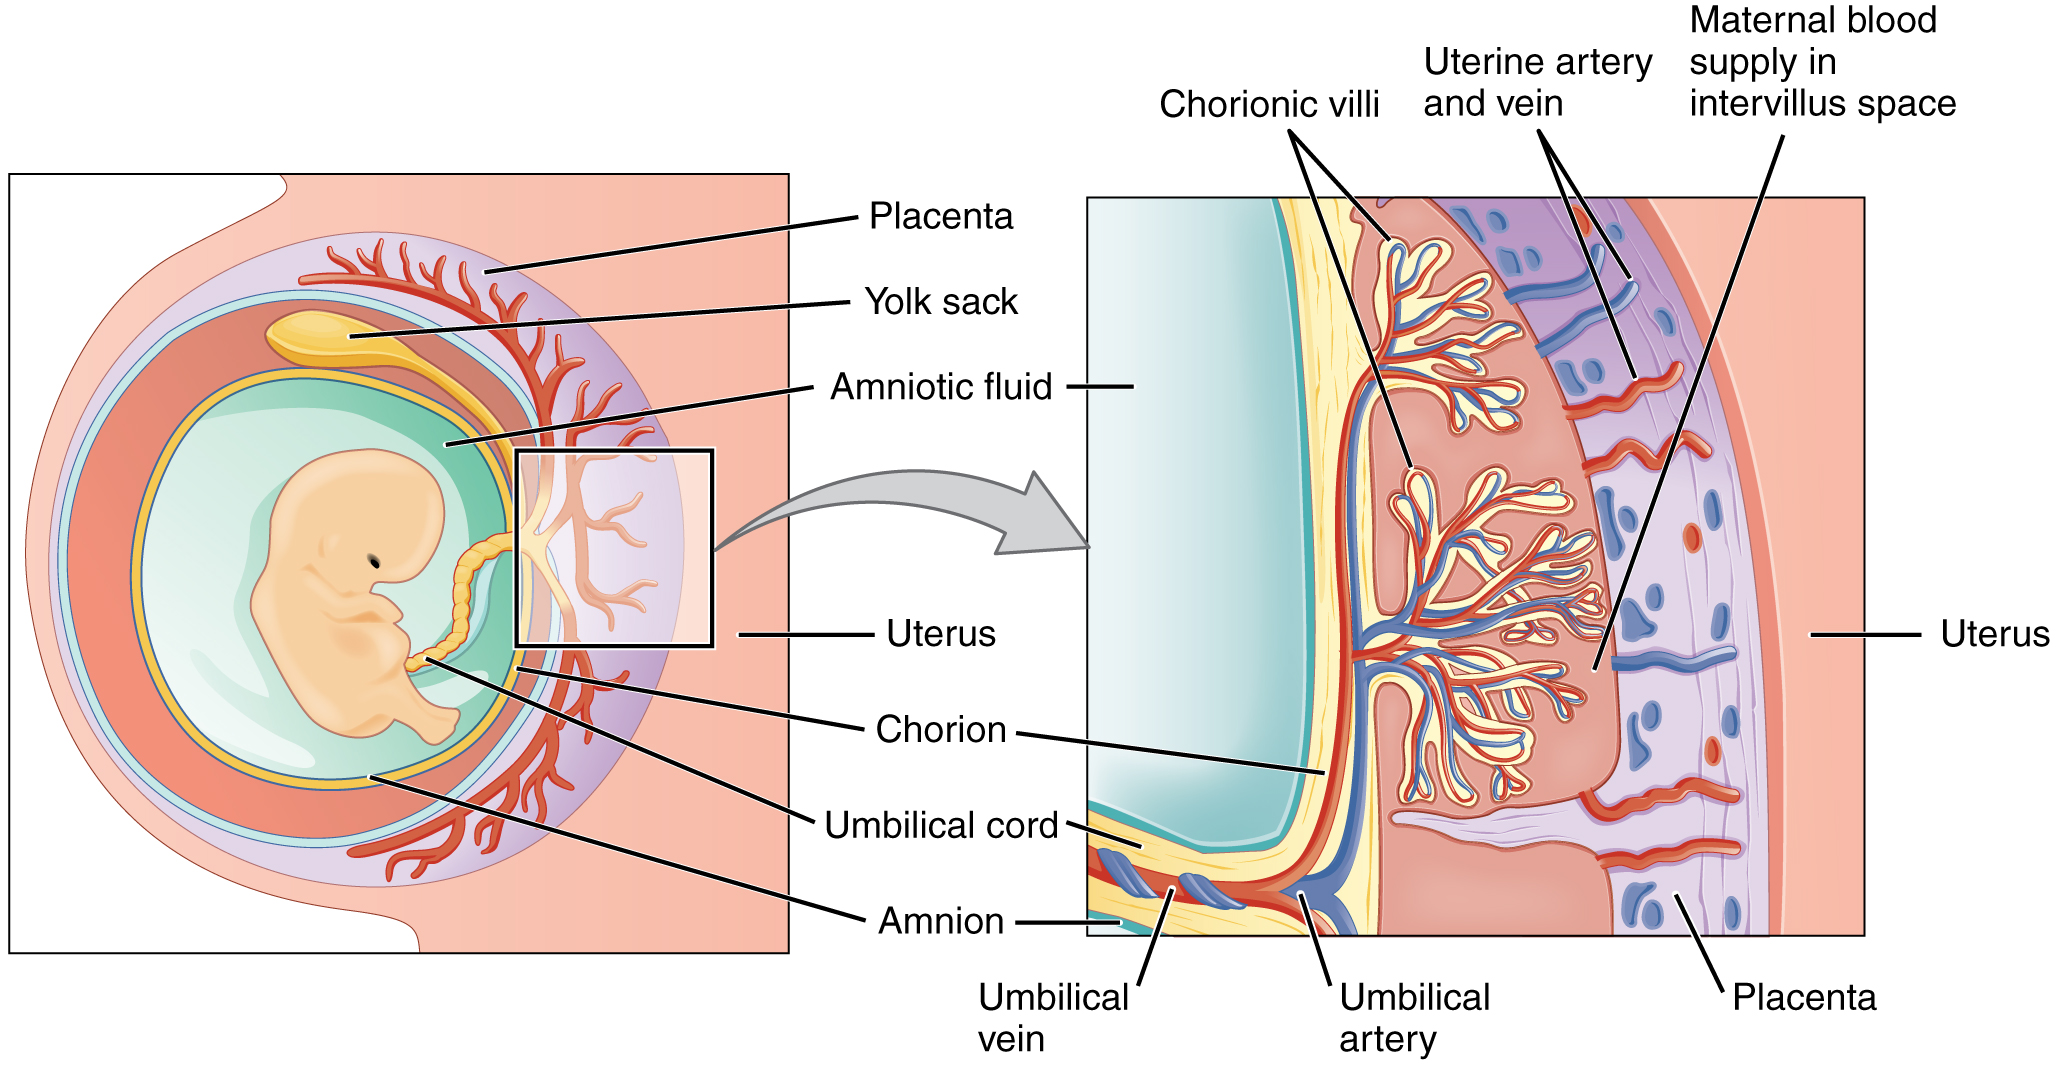 This figure shows the location and structure of the placenta. The left panel shows a fetus in the womb. The right panel shows a magnified view of a small region including the placenta and the blood vessels.